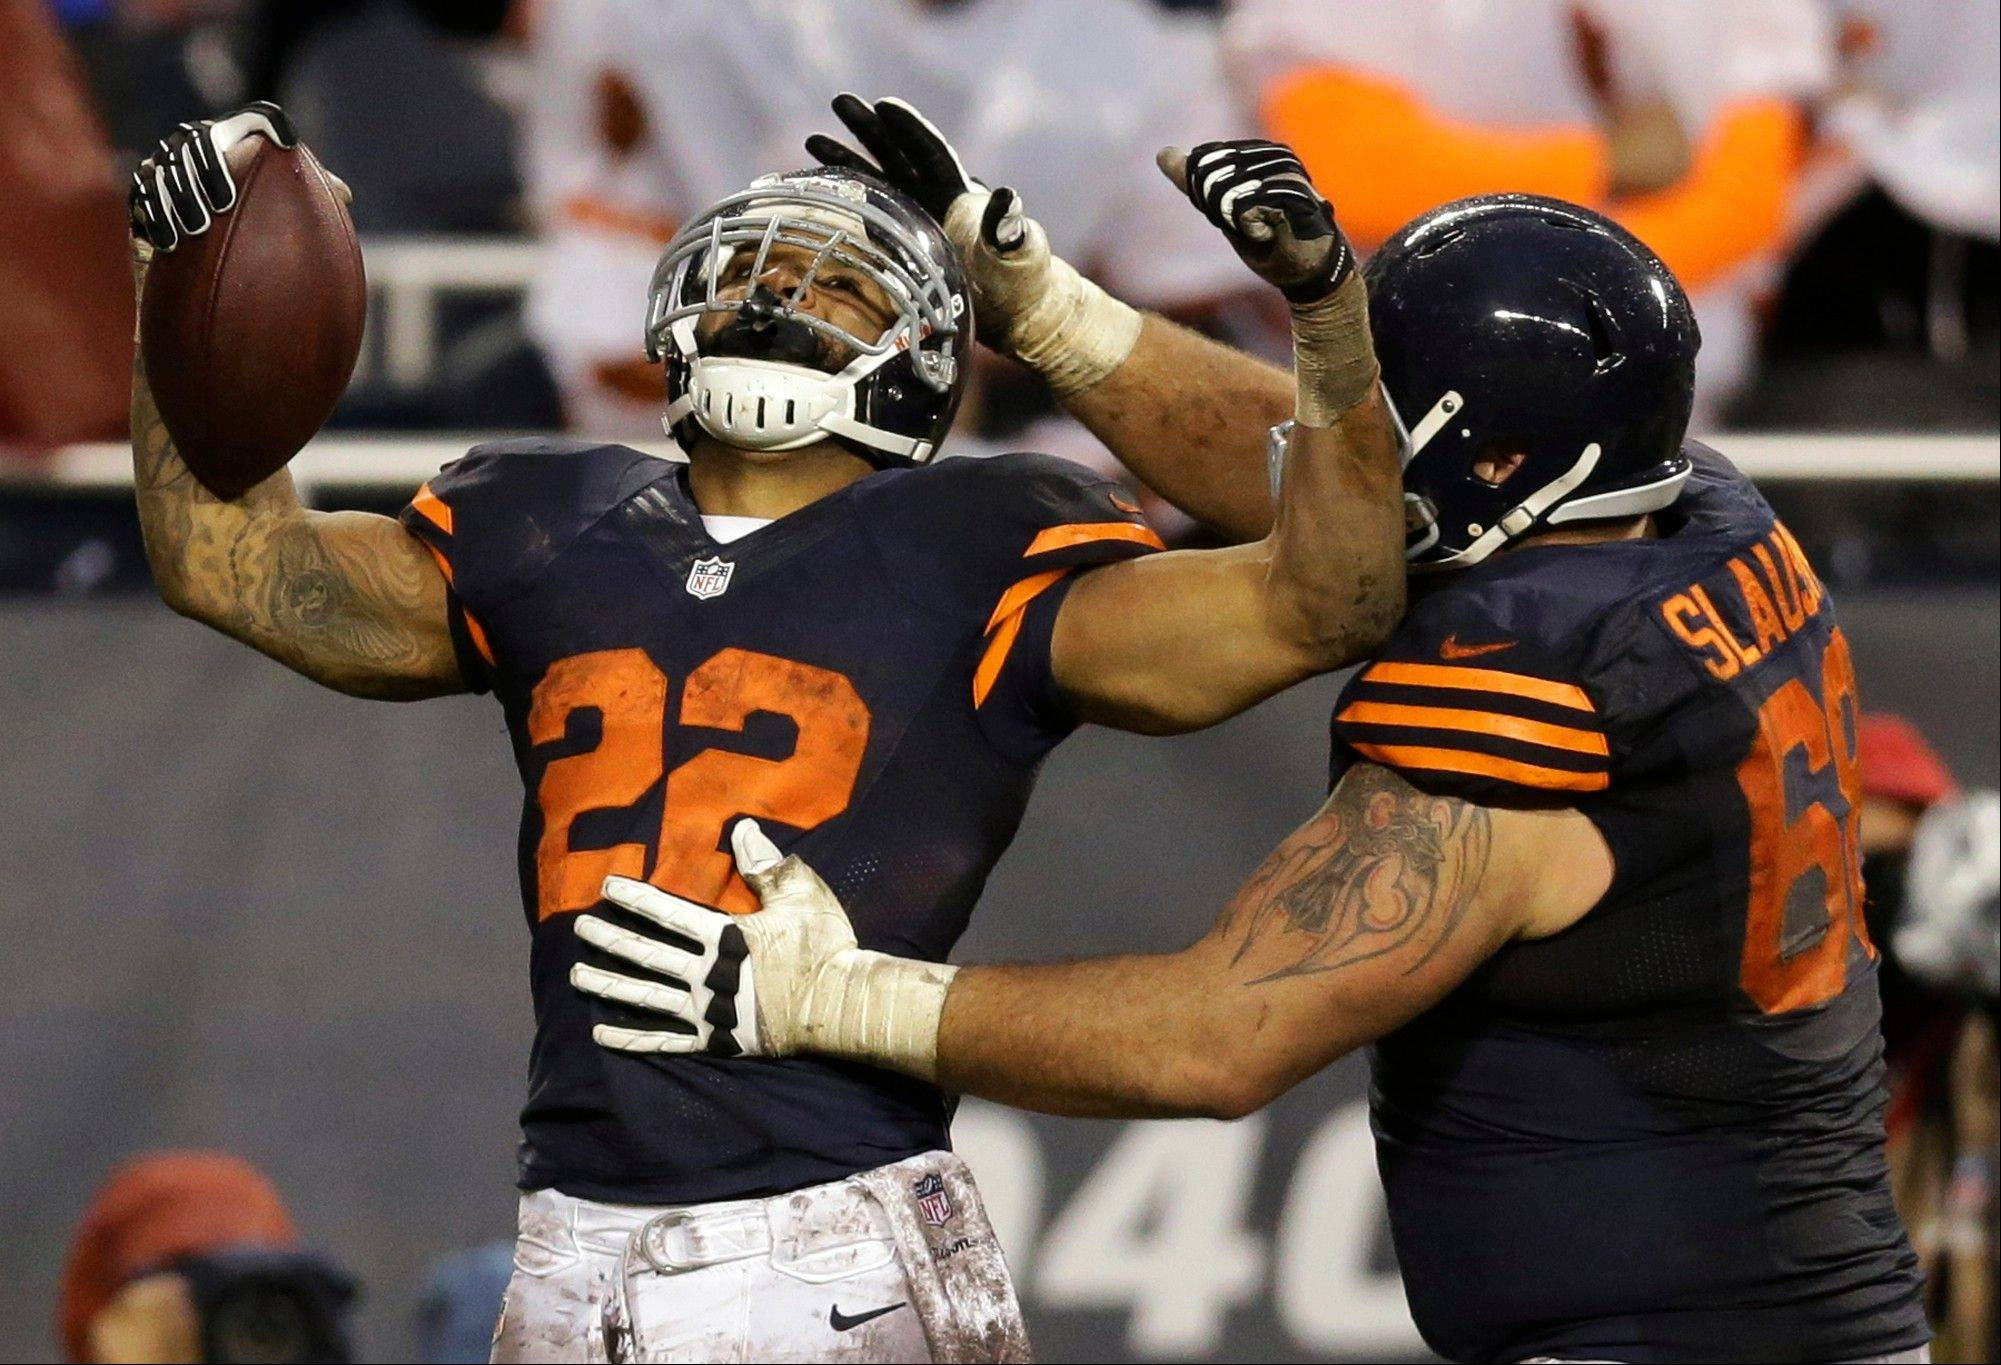 Chicago Bears running back Matt Forte (22) celebrates his touchdown reception with guard Matt Slauson (68) during the second half of an NFL football game against the Baltimore Ravens, Sunday, Nov. 17, 2013, in Chicago.